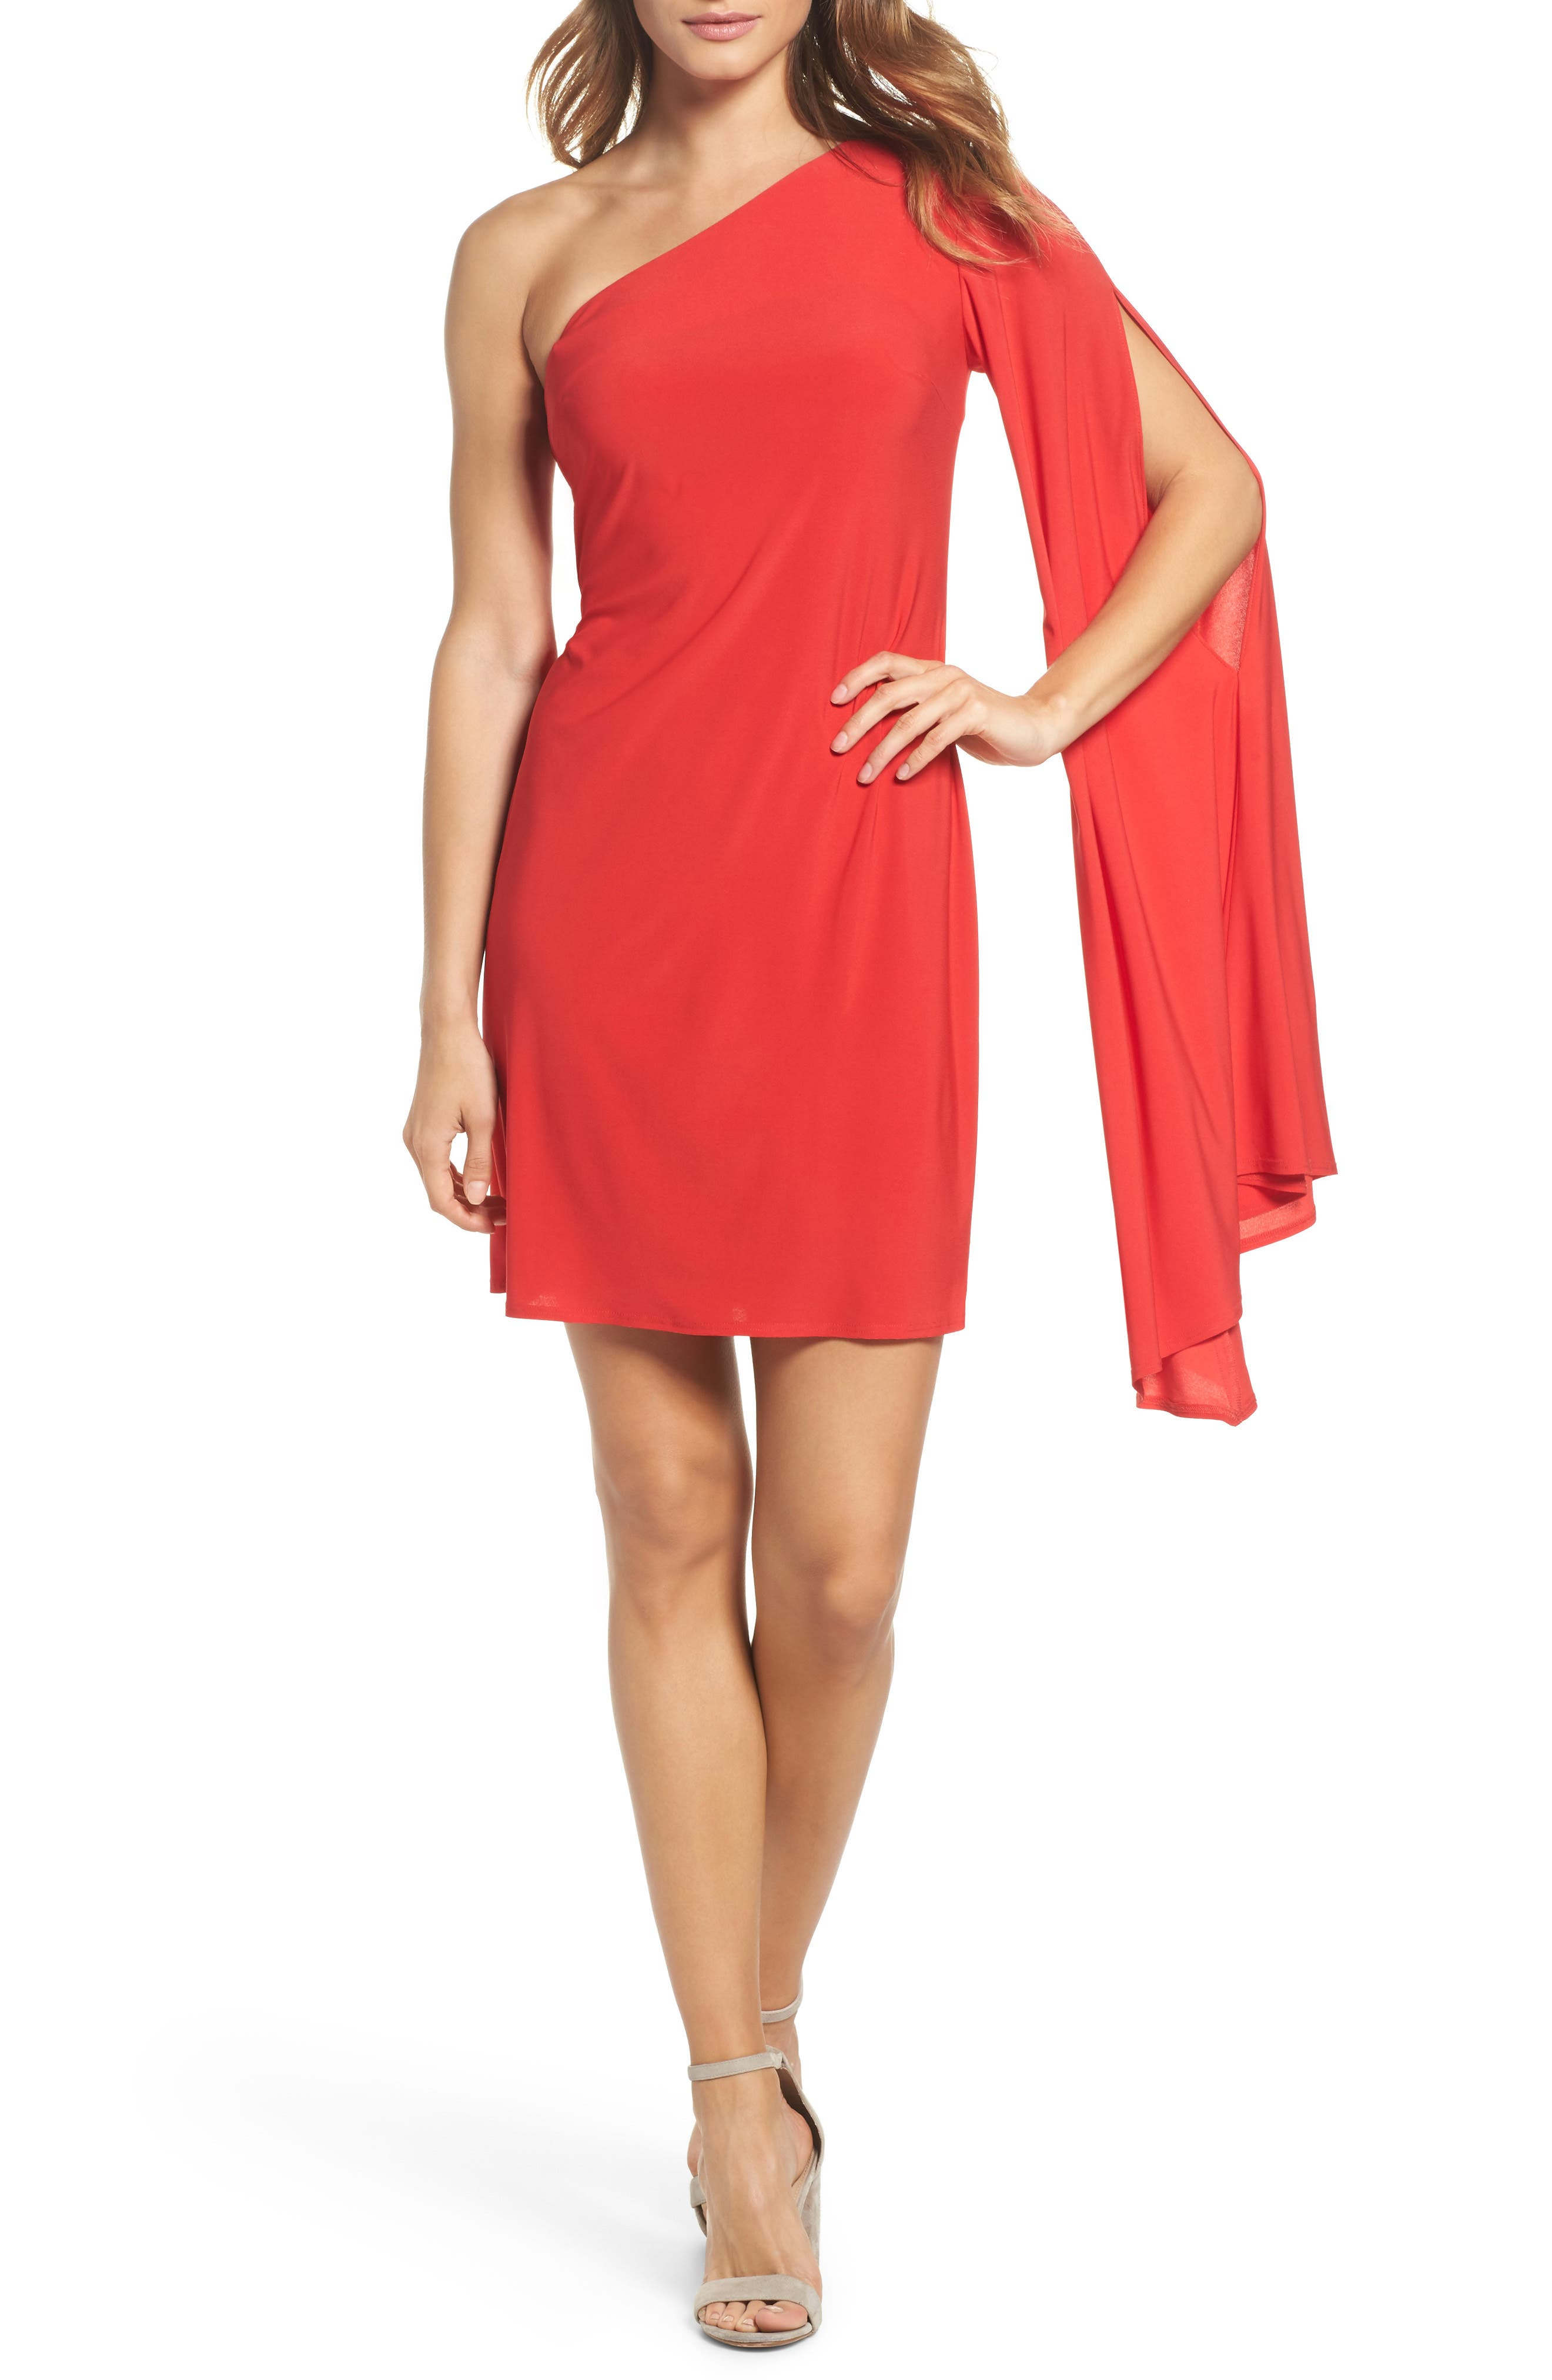 Musa One-Shoulder Dress,                         Main,                         color, Pagoda Red